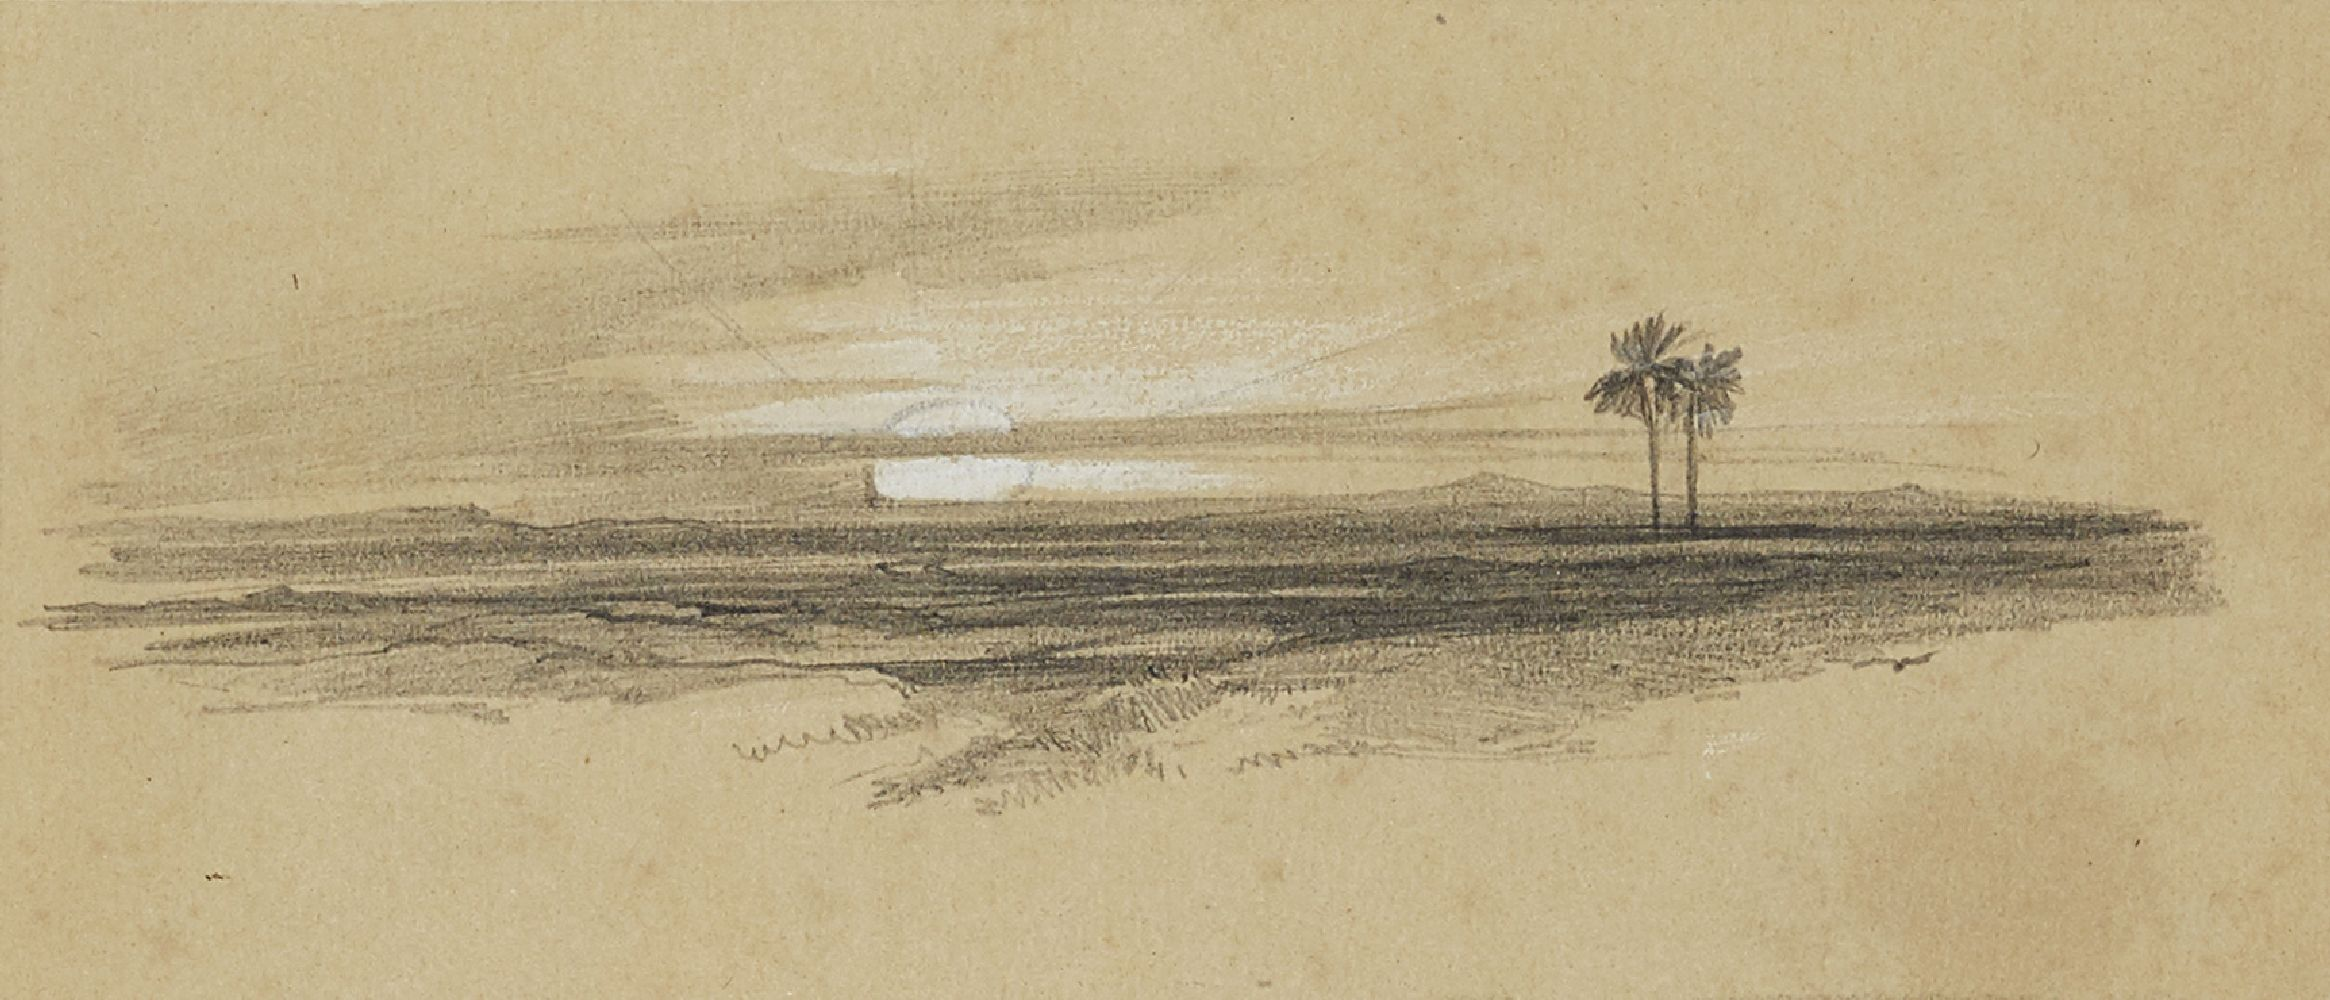 Edward Lear, British 1812-1888- Sunset over a desert landscape; pencil heightened with white on buff